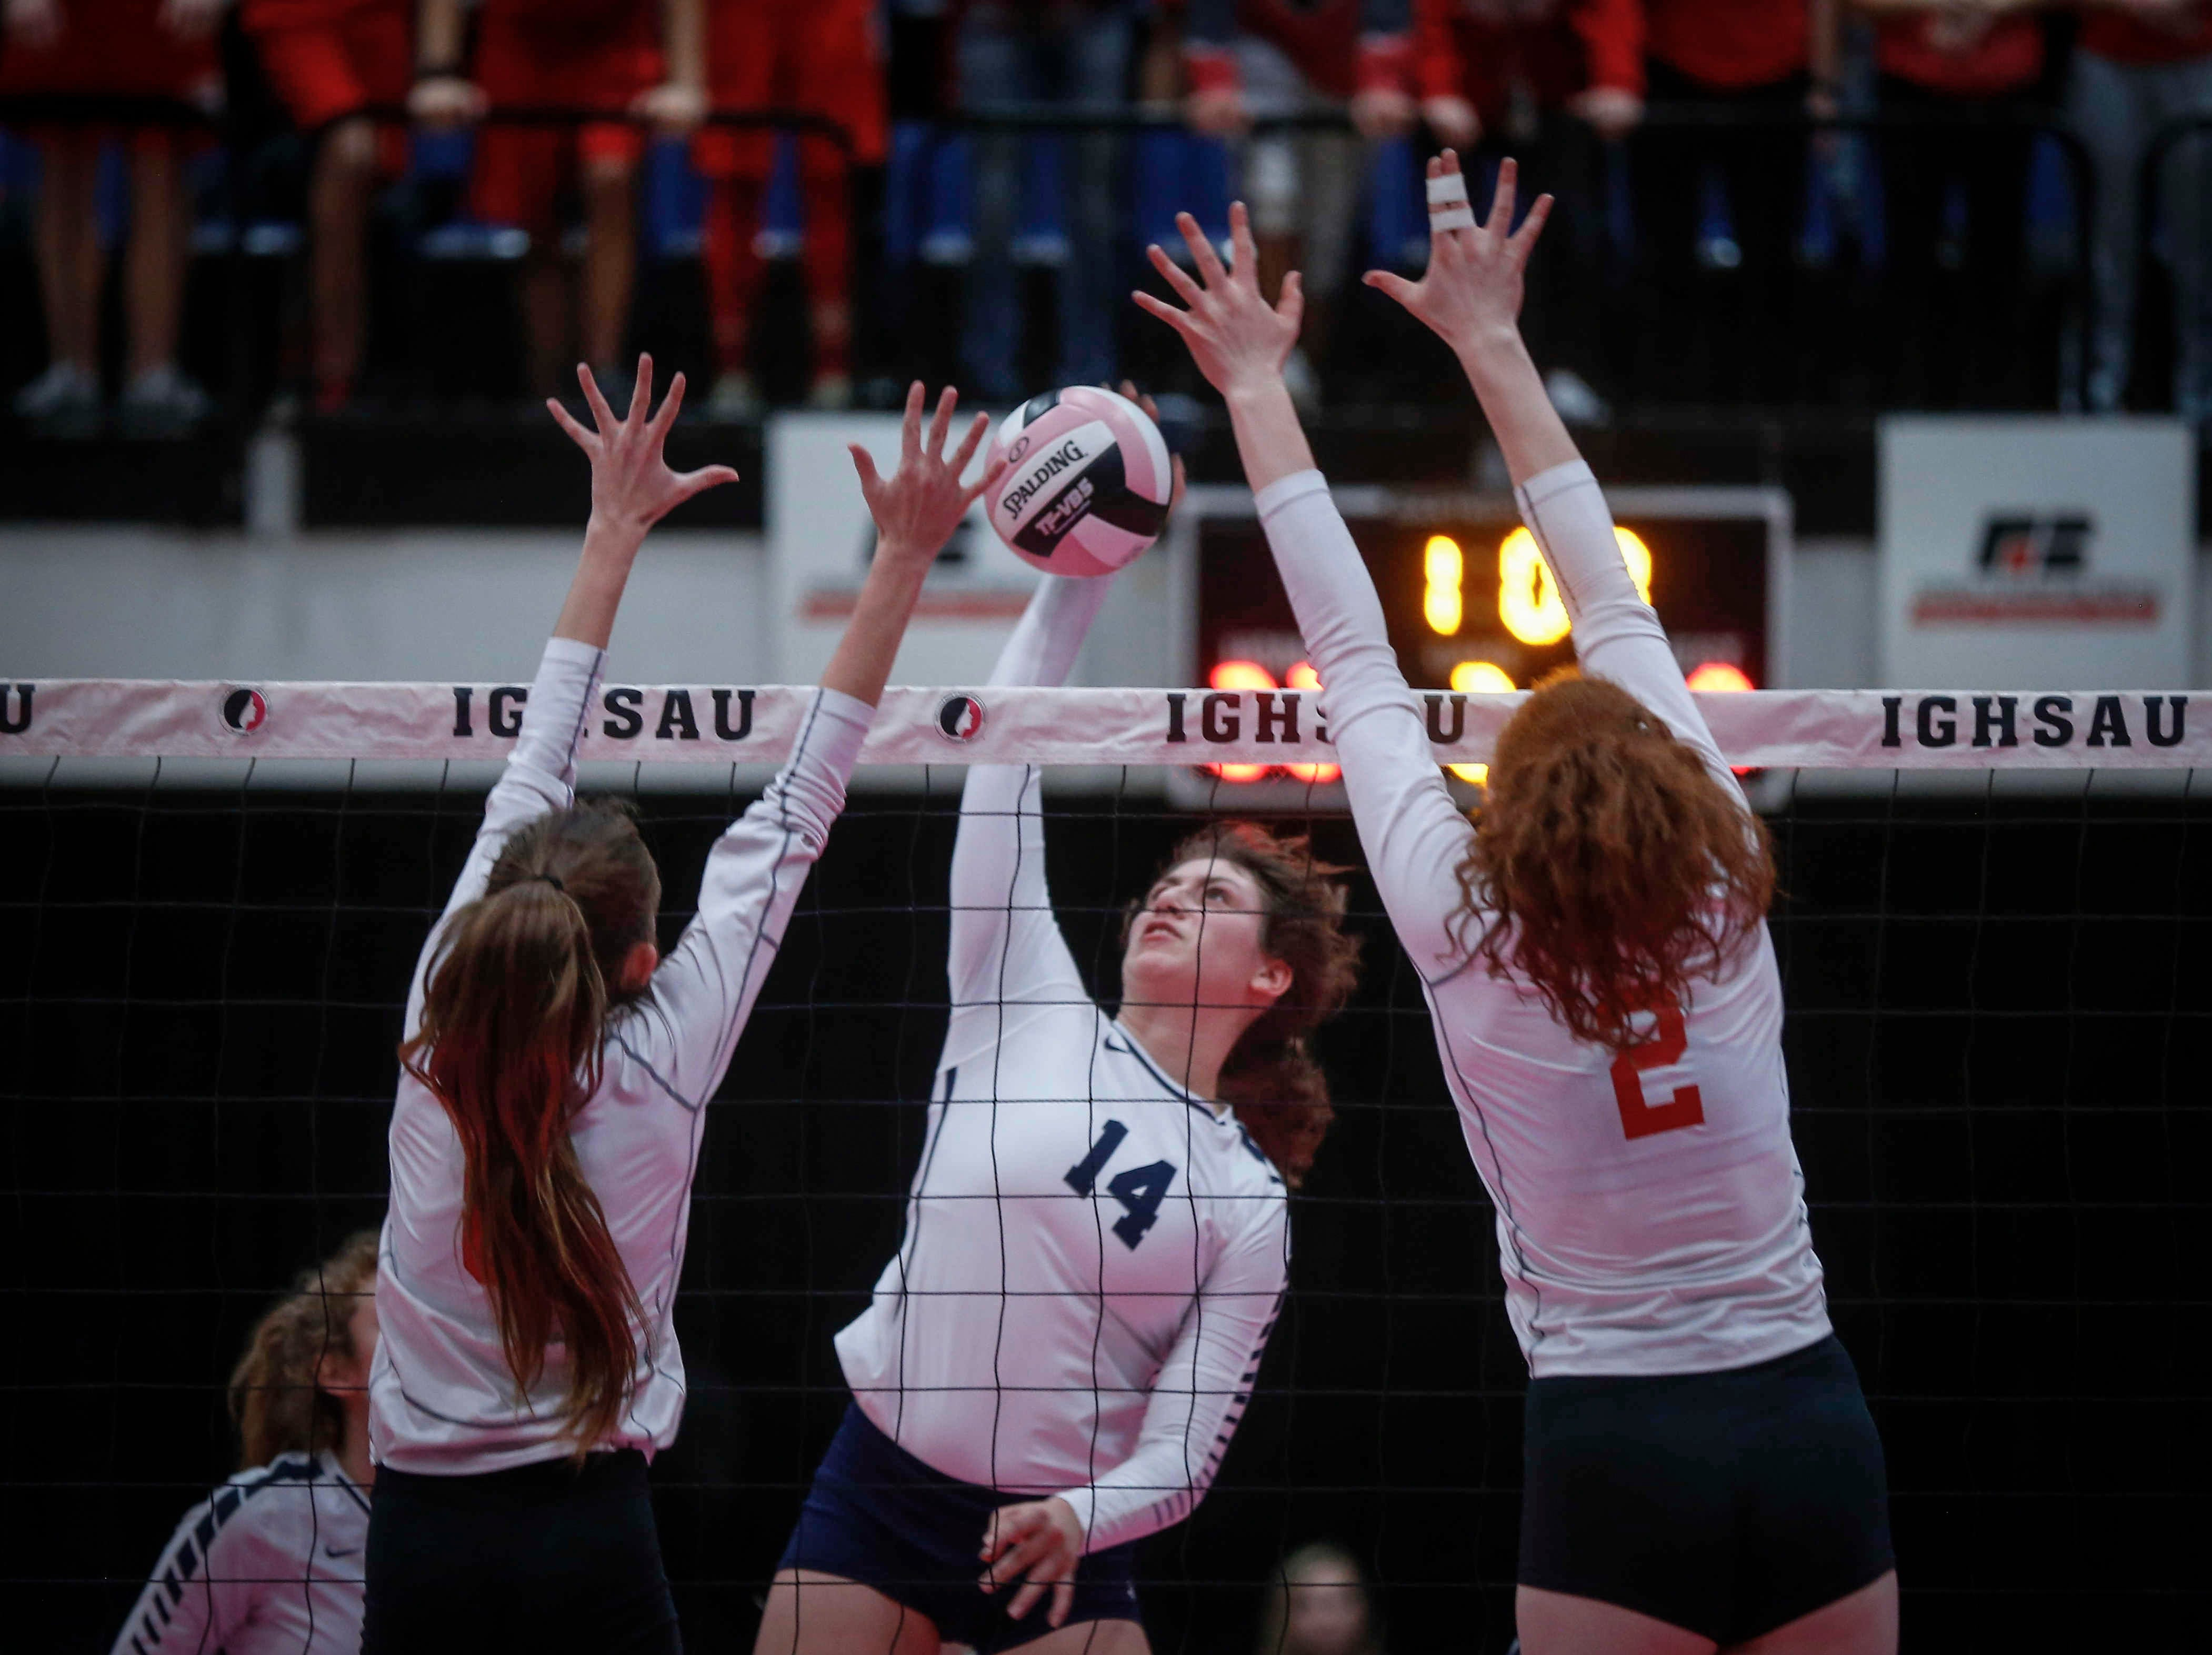 Cedar Rapids Xavier's Olivia Richards knocks the ball over the net against Dallas Center-Grimes in Class 4A during the 2018 Iowa High School state volleyball tournament on Thursday, Nov. 8, 2018, in Cedar Rapids.